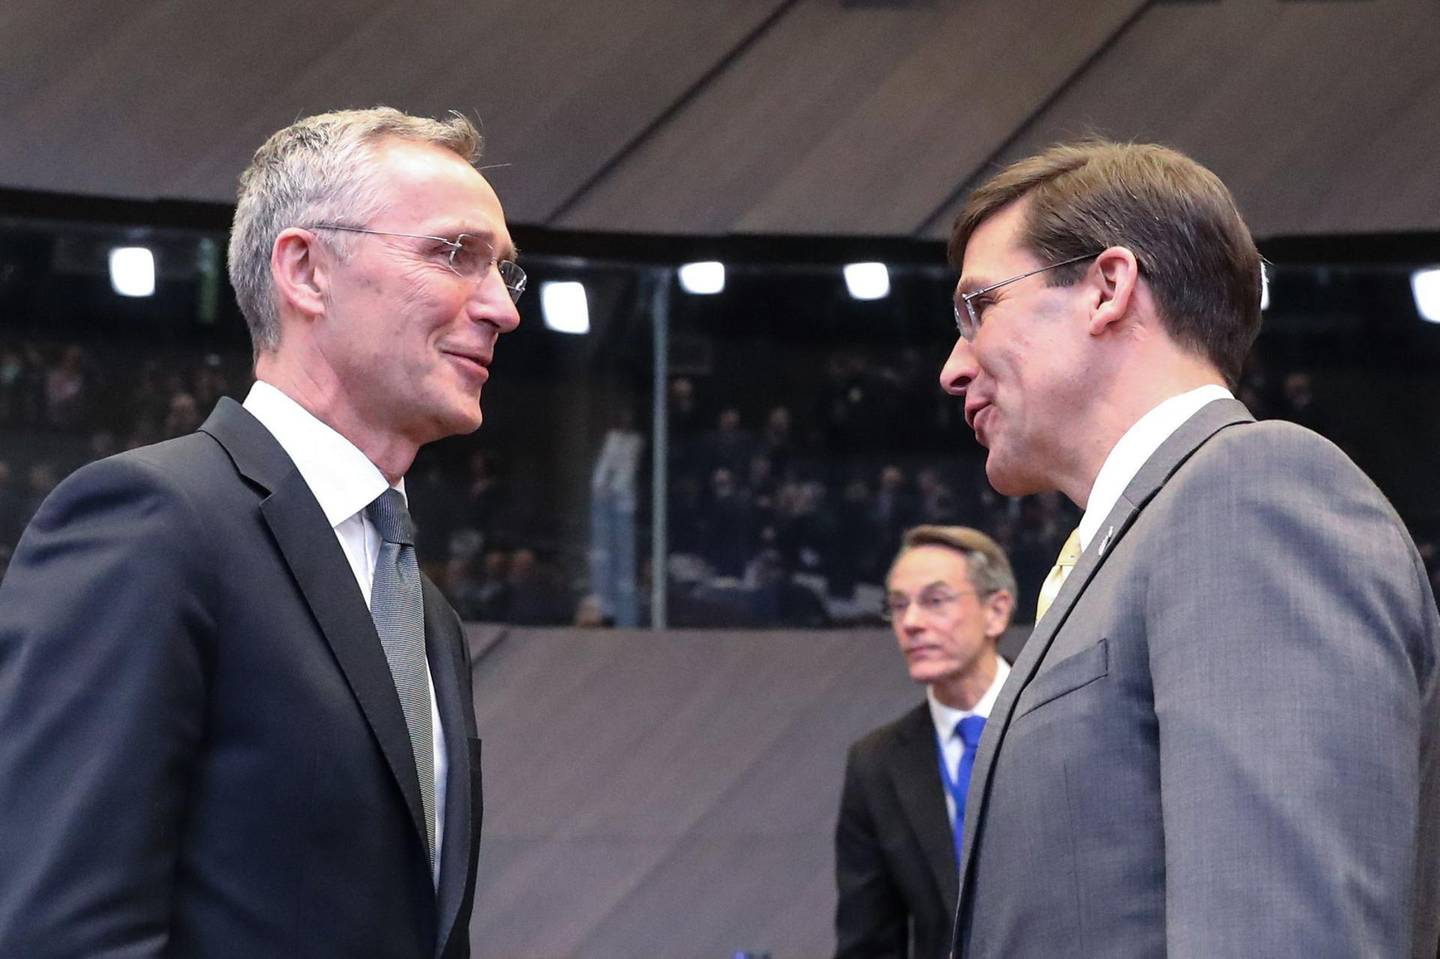 NATO Secretary General Jens Stoltenberg (L), speaks with U.S. Secretary for Defense Mark Esper during a NATO defence minister's meeting in Brussels on February 13, 2020, to address key issues including the Alliance's training mission in Iraq and the fight against international terrorism.  Ministers will also discuss NATO's presence in Afghanistan, the challenges posed by Russia's missile systems and NATO-EU cooperation. / AFP / Aris Oikonomou